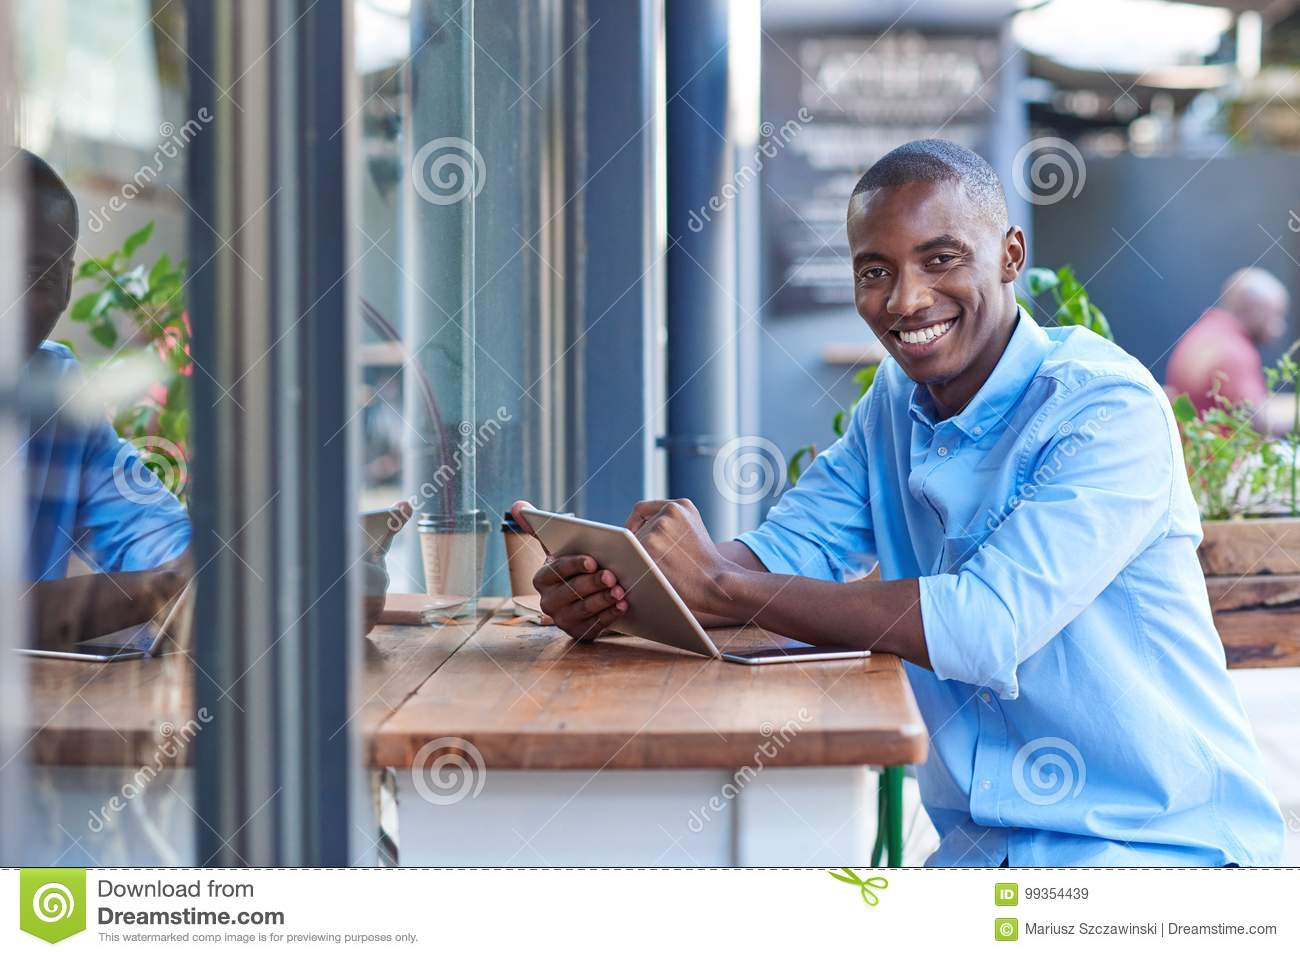 Smiling African man working online at a sidewalk cafe counter